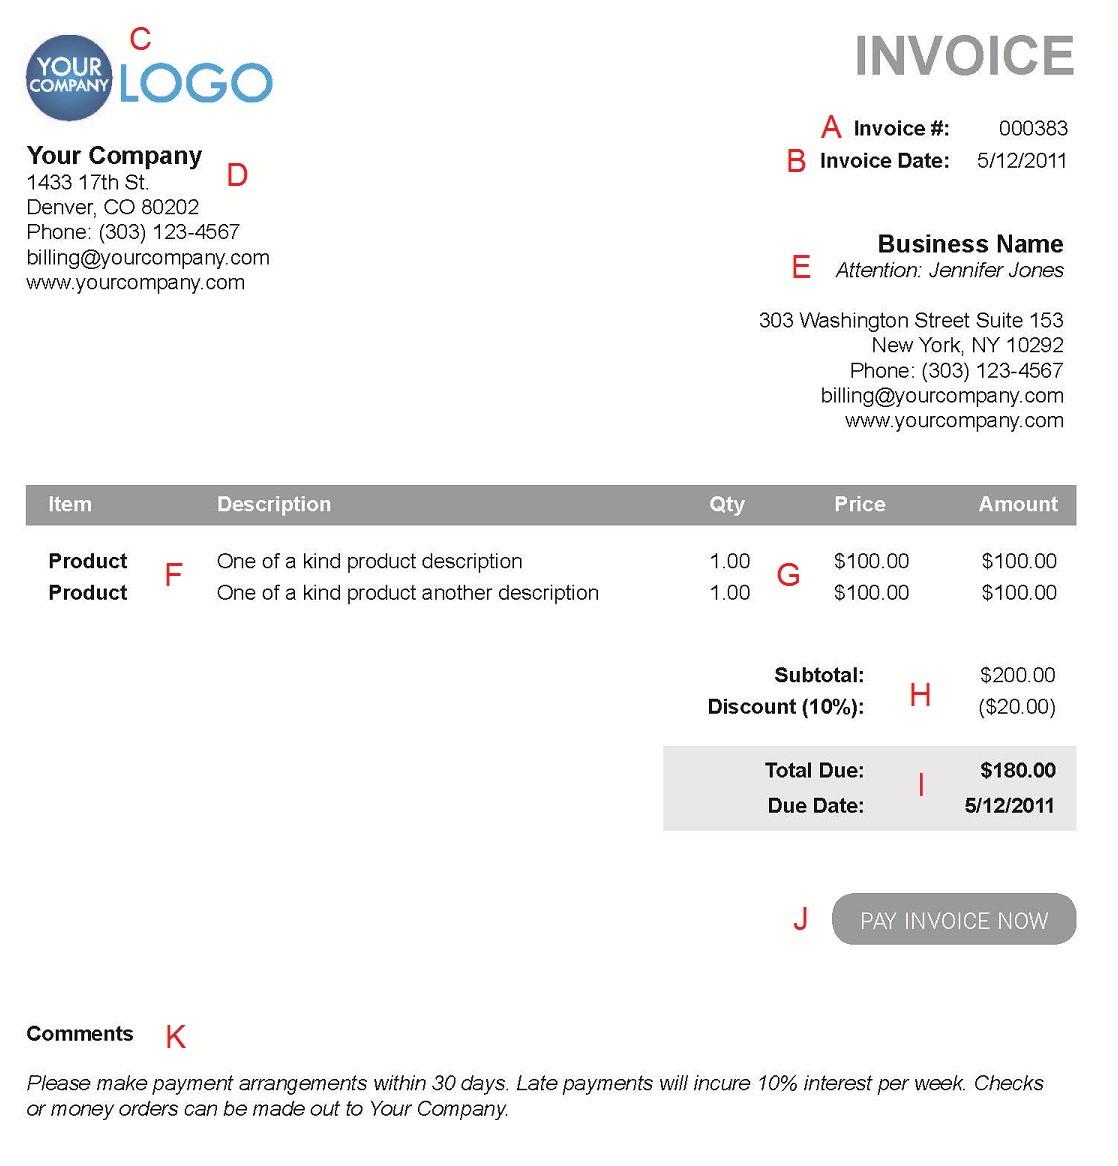 Weirdmailus  Surprising The  Different Sections Of An Electronic Payment Invoice With Exquisite A  With Awesome Order Receipts Also Iphone Email Read Receipt In Addition Deposit Receipt Form And Construction Receipt Template As Well As Free Printable Business Receipts Additionally Zebra Receipt Printer From Paysimplecom With Weirdmailus  Exquisite The  Different Sections Of An Electronic Payment Invoice With Awesome A  And Surprising Order Receipts Also Iphone Email Read Receipt In Addition Deposit Receipt Form From Paysimplecom